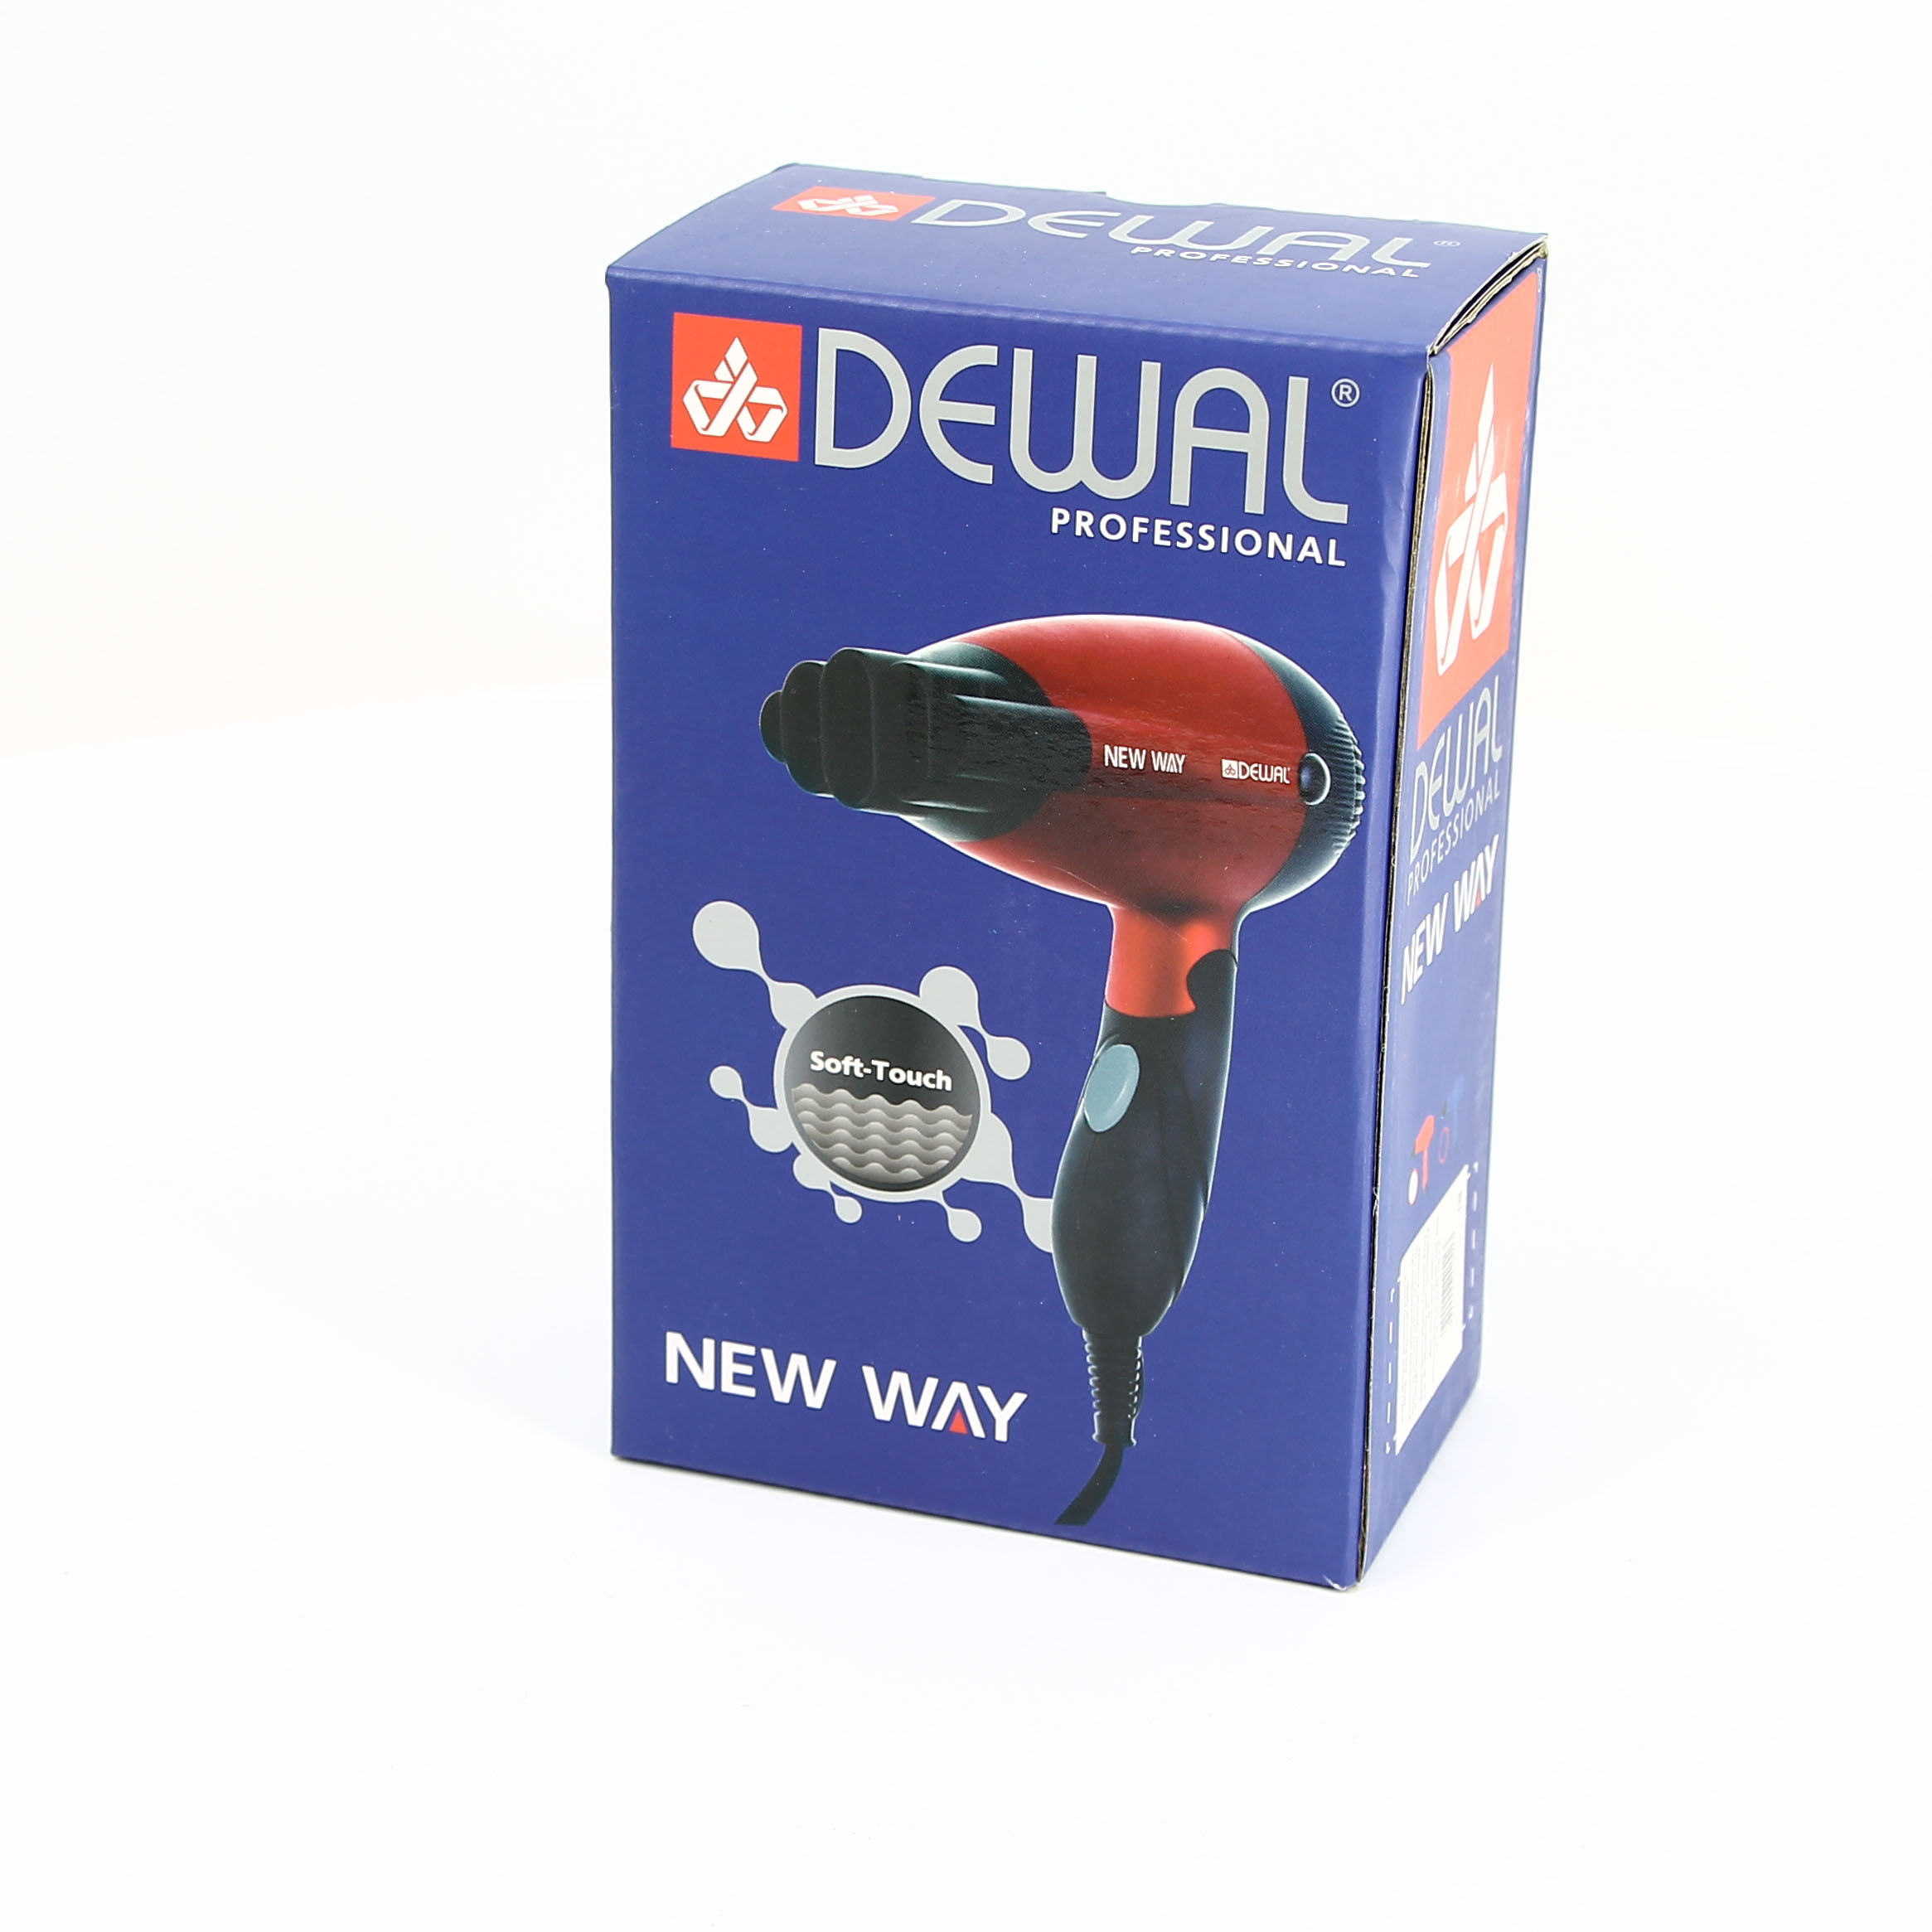 Фен 1000 Вт New Way DEWAL 03-5512 Blue